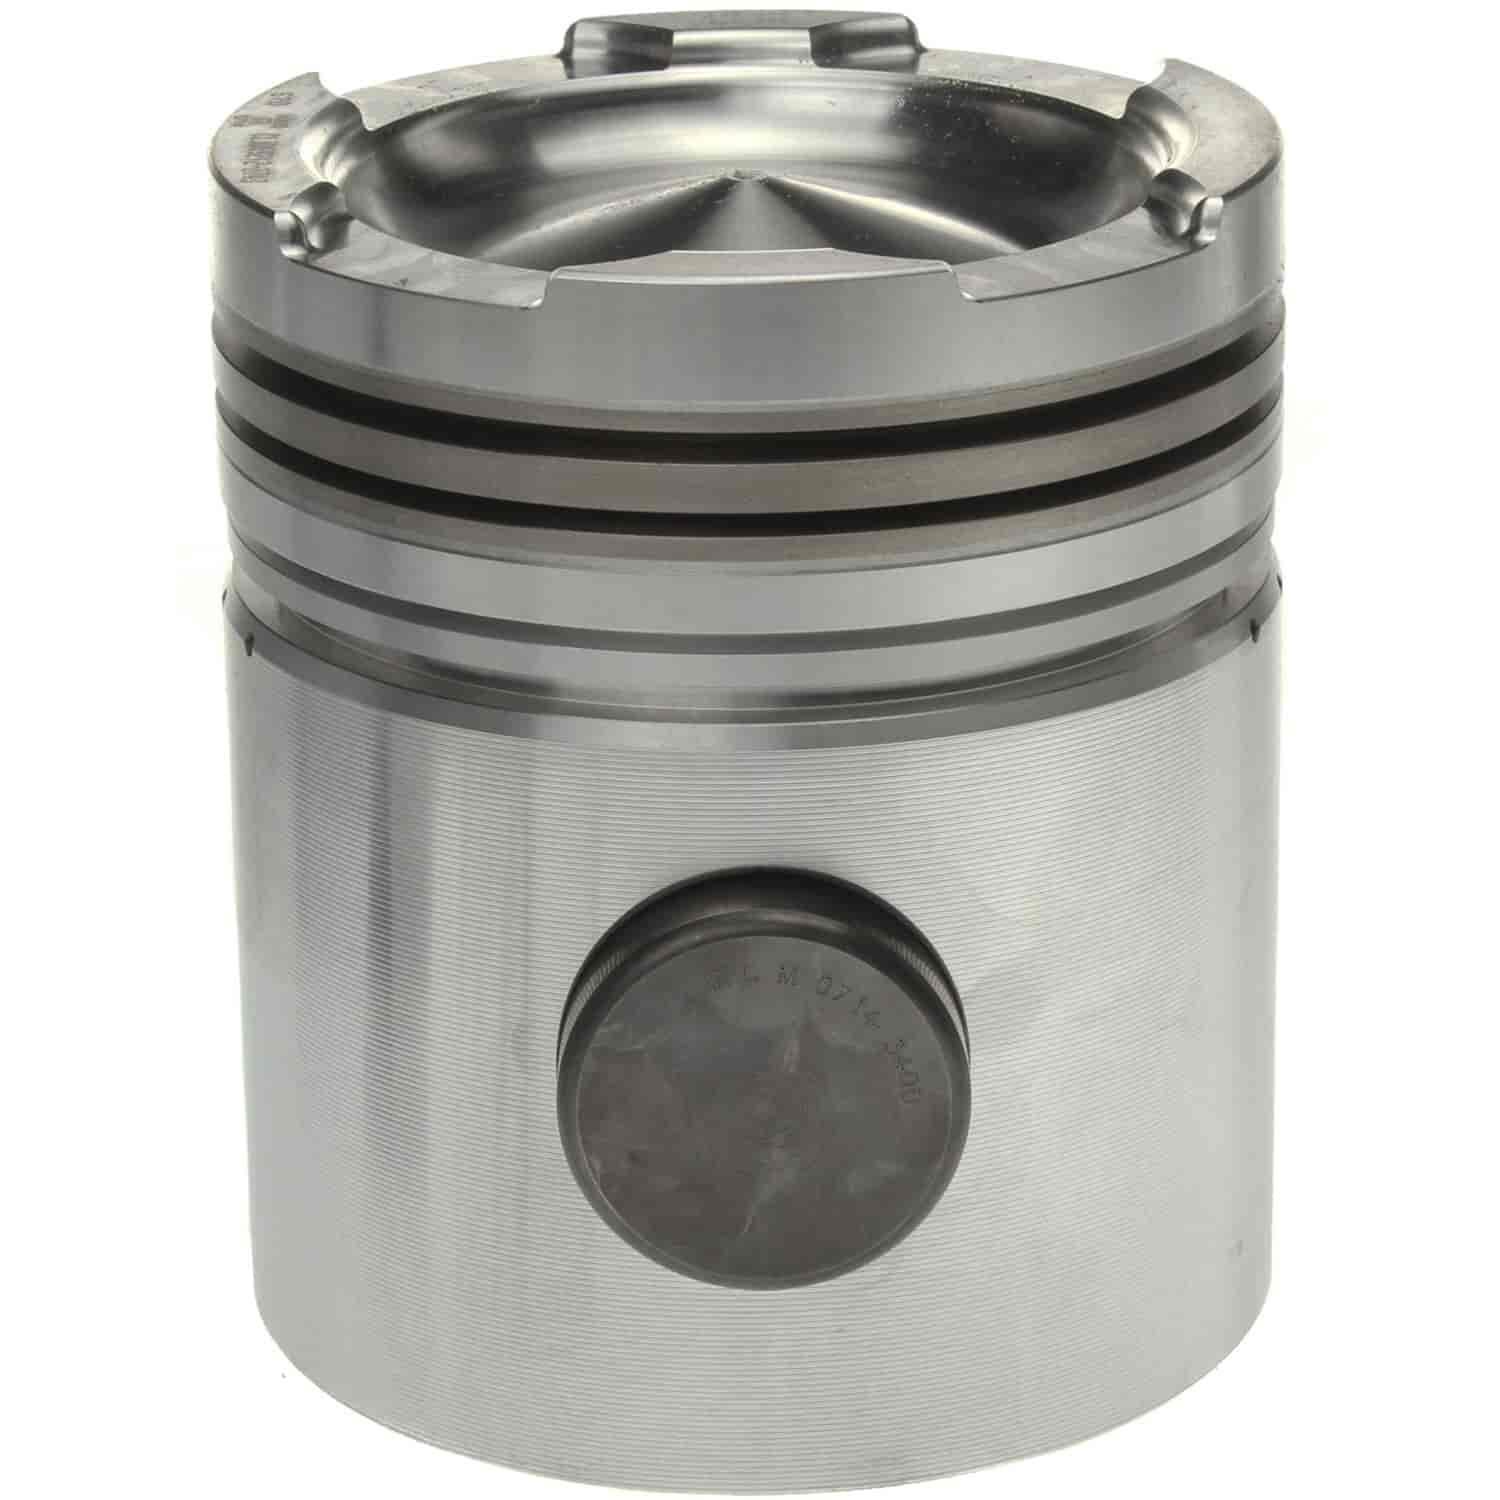 Clevite MAHLE Piston for Cummins 5 500 Bore 855 NH/NT Series Diesel Engs